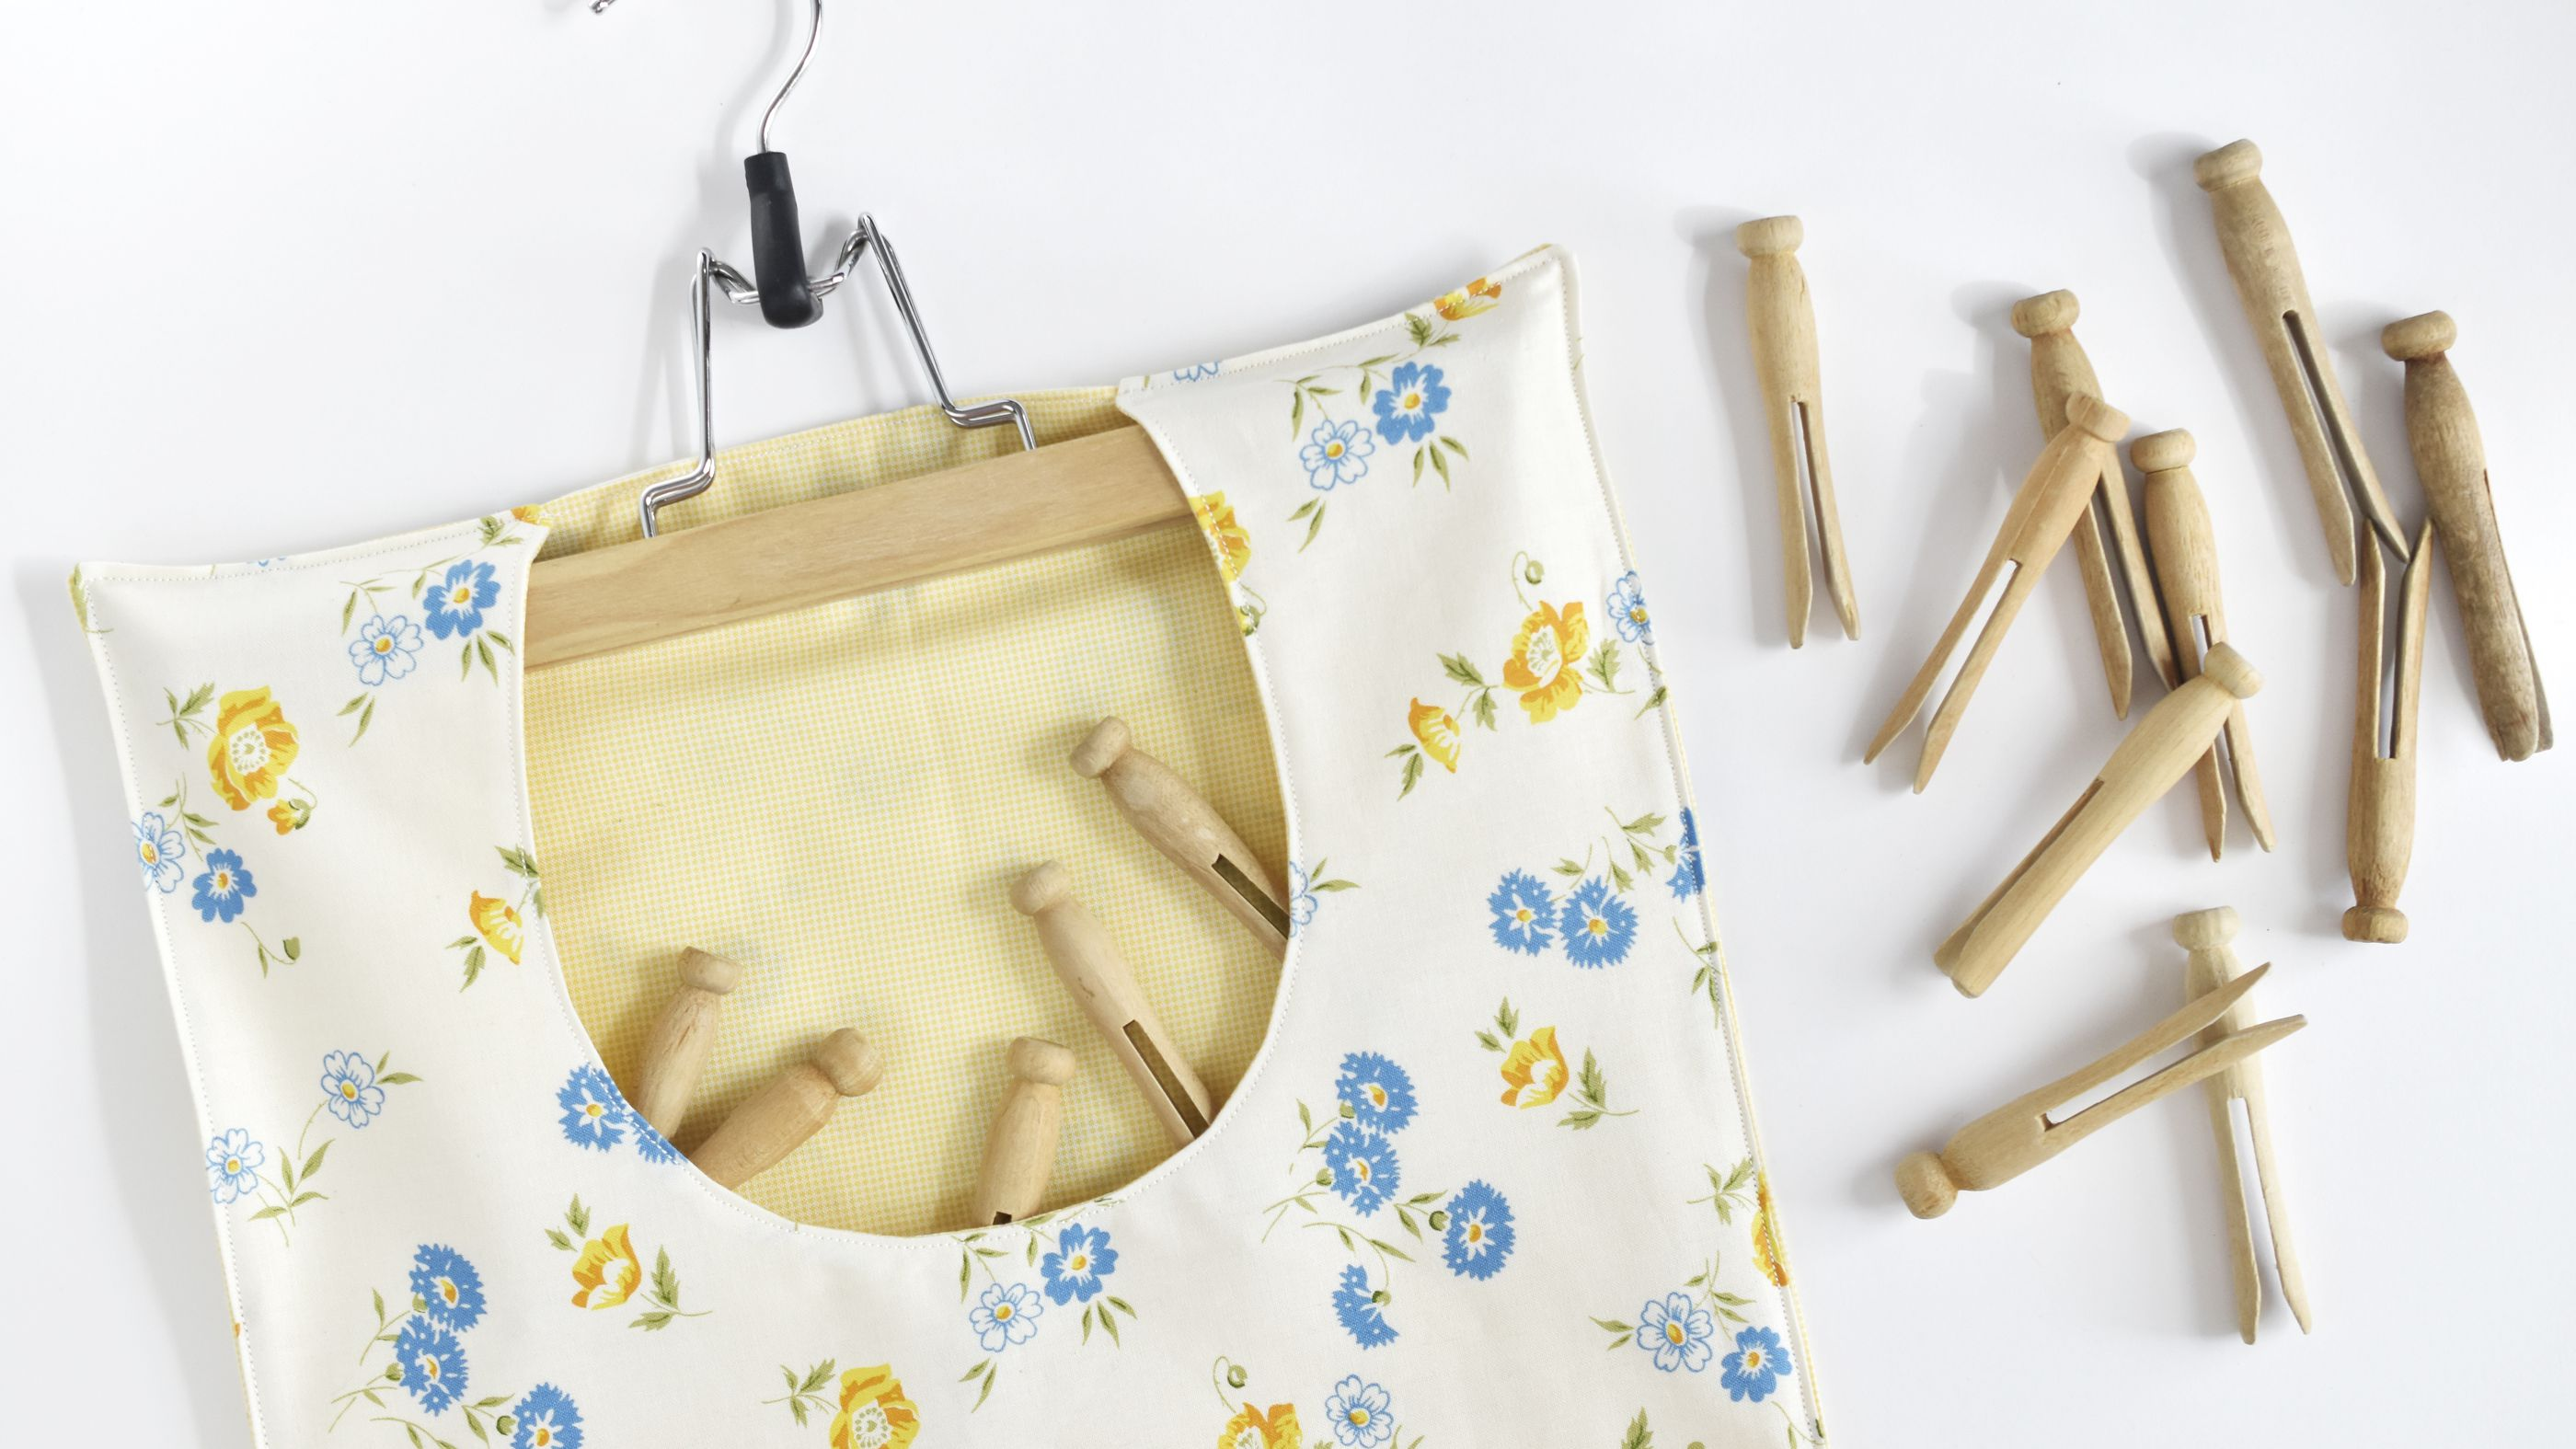 How To Make Your Own Clothespin Bag